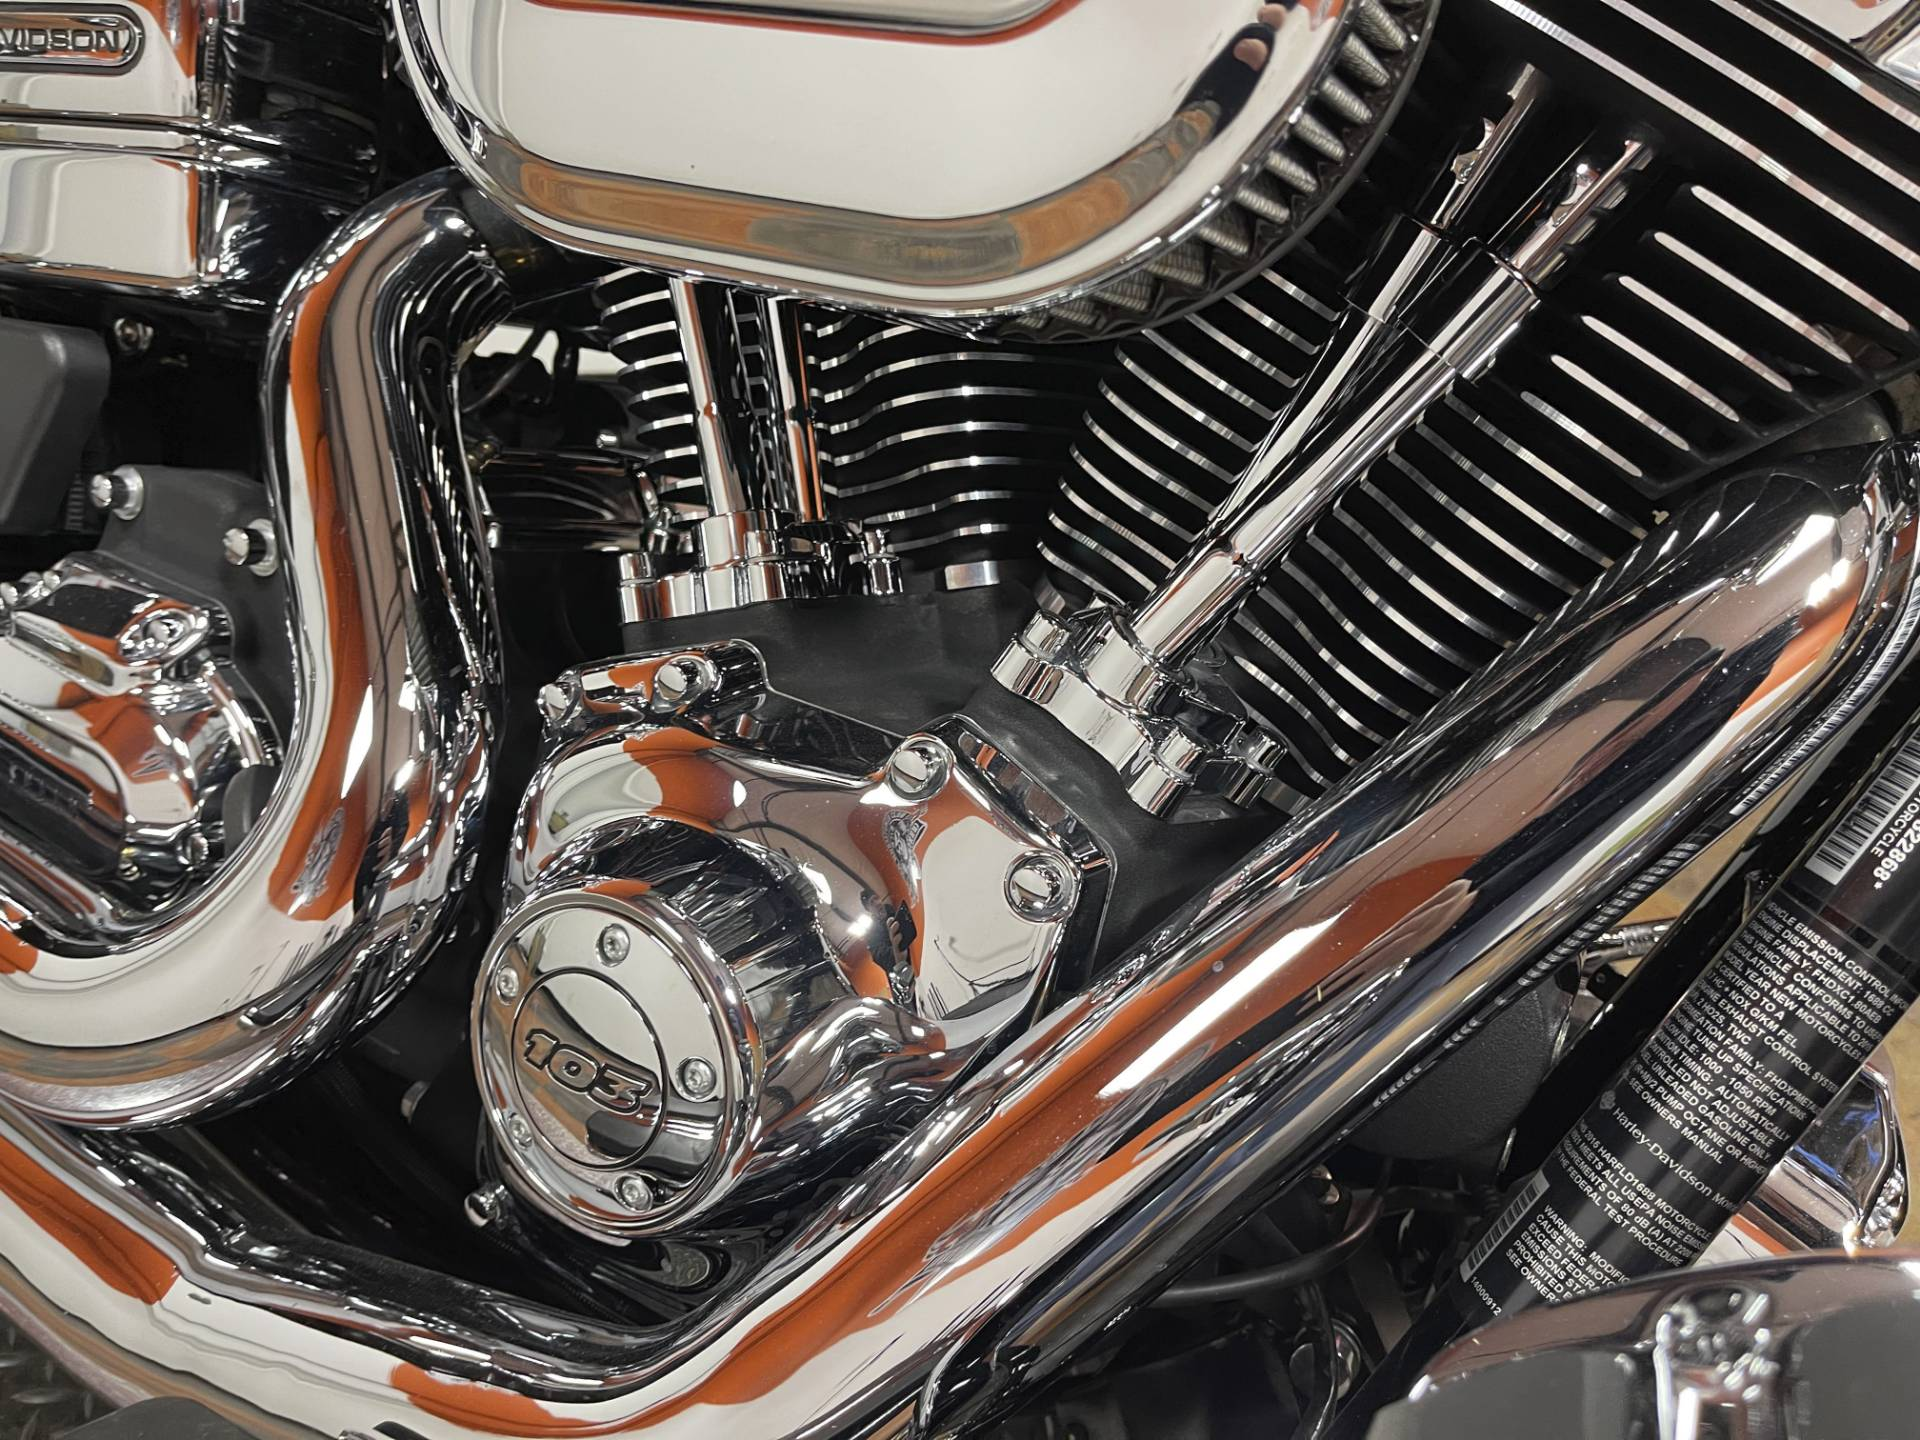 2015 Harley-Davidson Switchback™ in Marion, Illinois - Photo 8